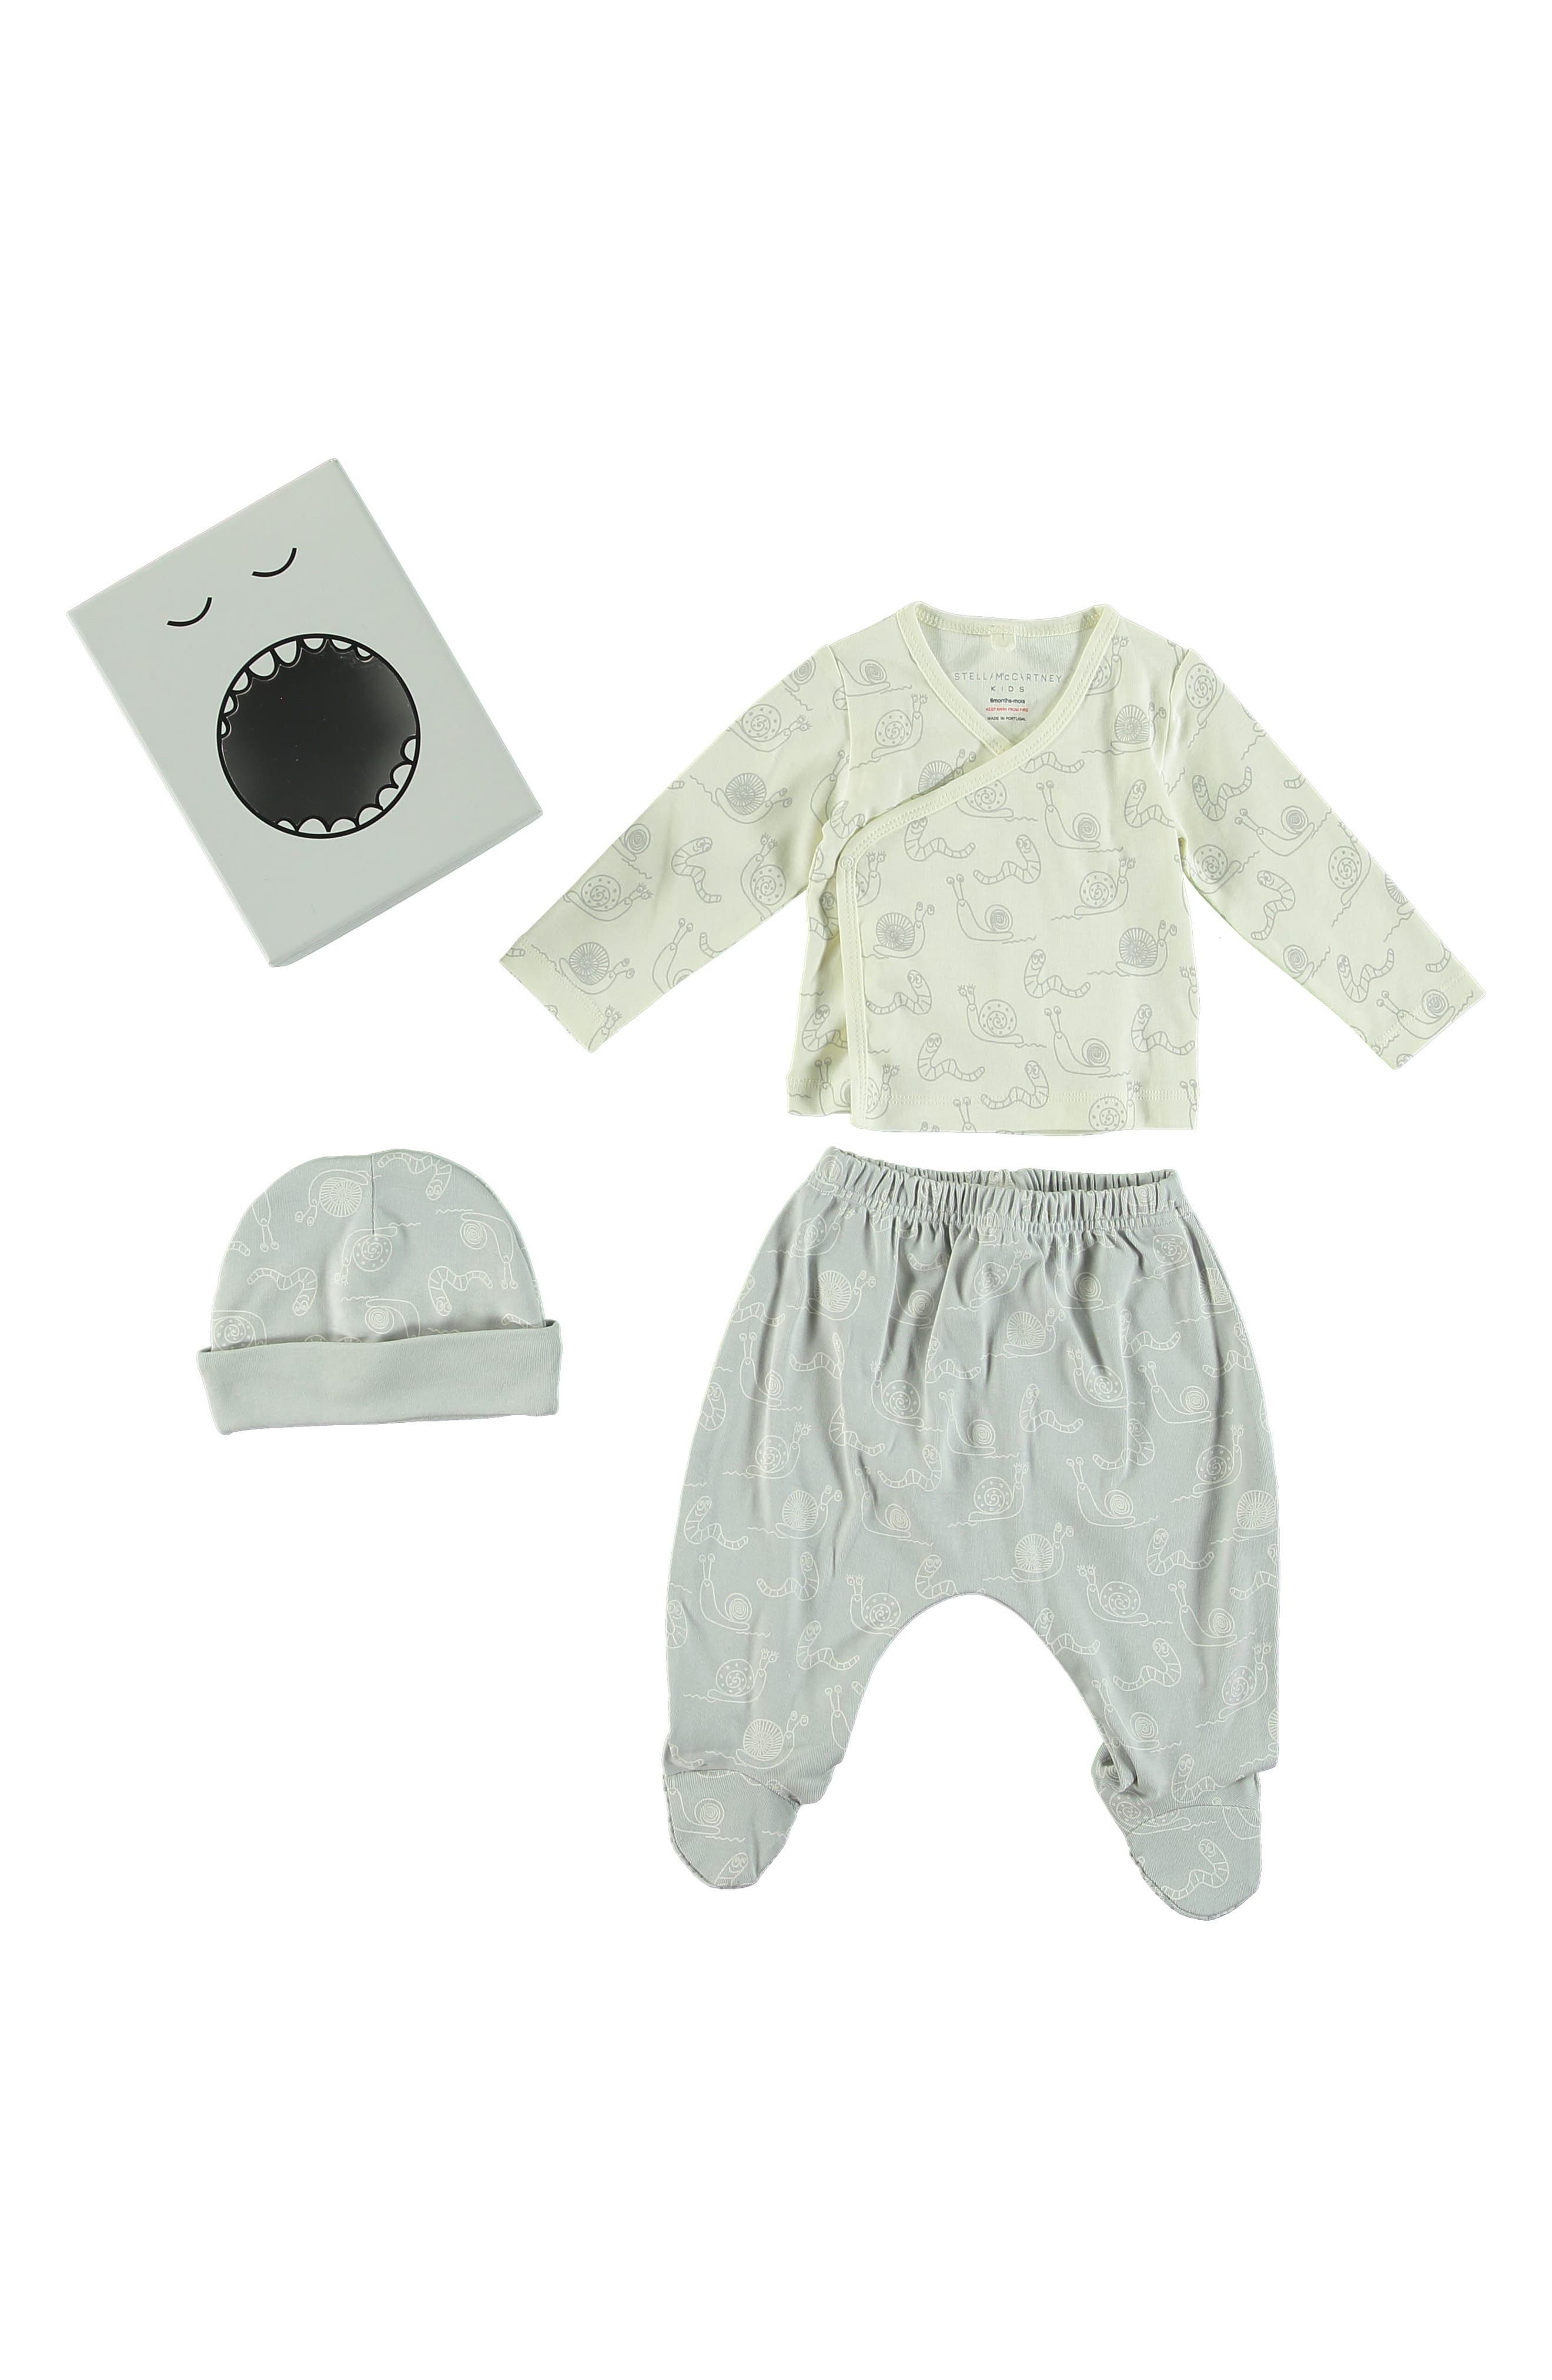 Little Starling Wrap Top, Footed Pants & Hat Set,                             Main thumbnail 1, color,                             WHITE GREY